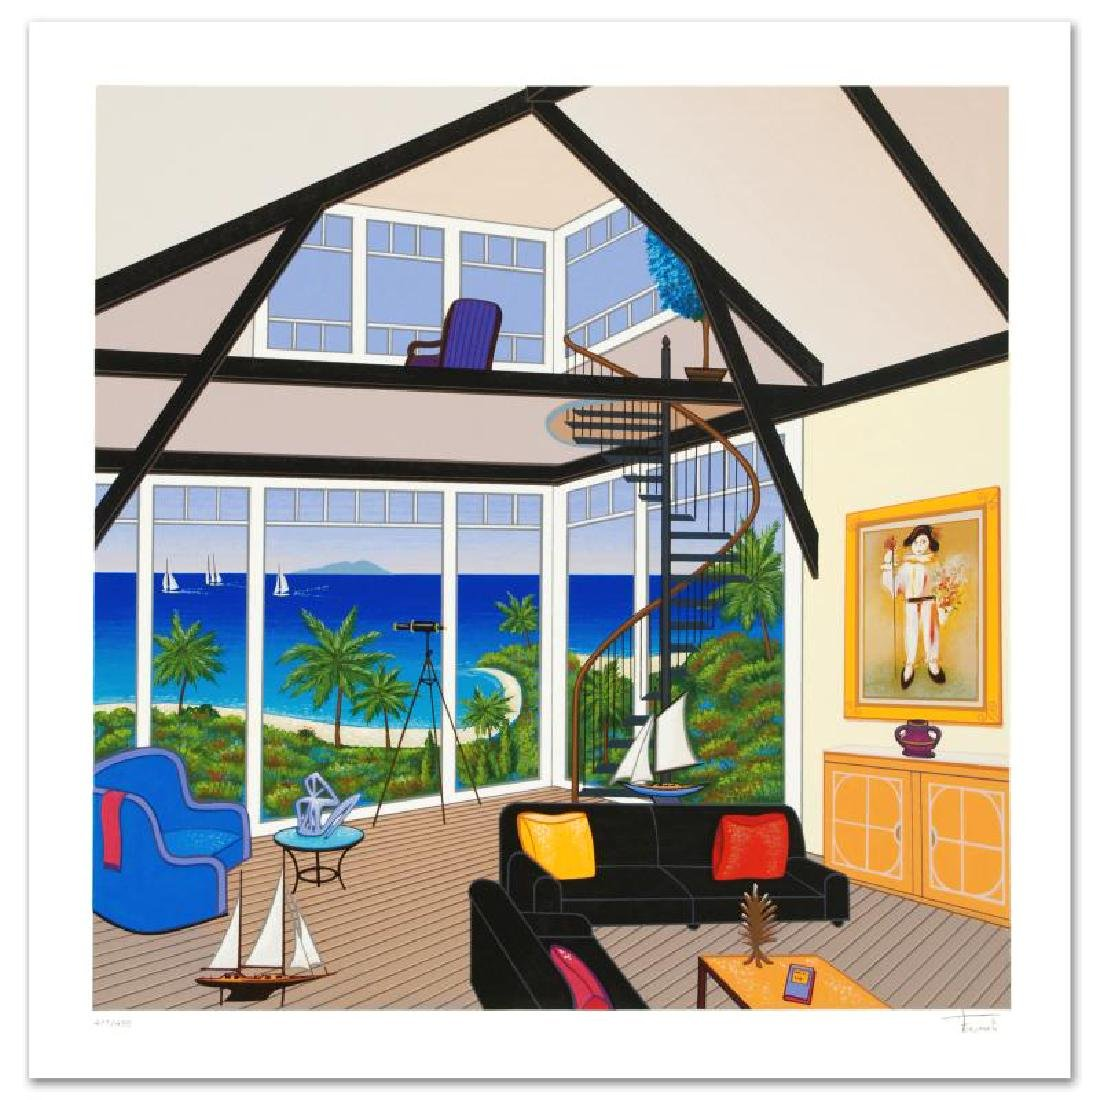 Duplex Over Stinson Limited Edition Serigraph by Fanch